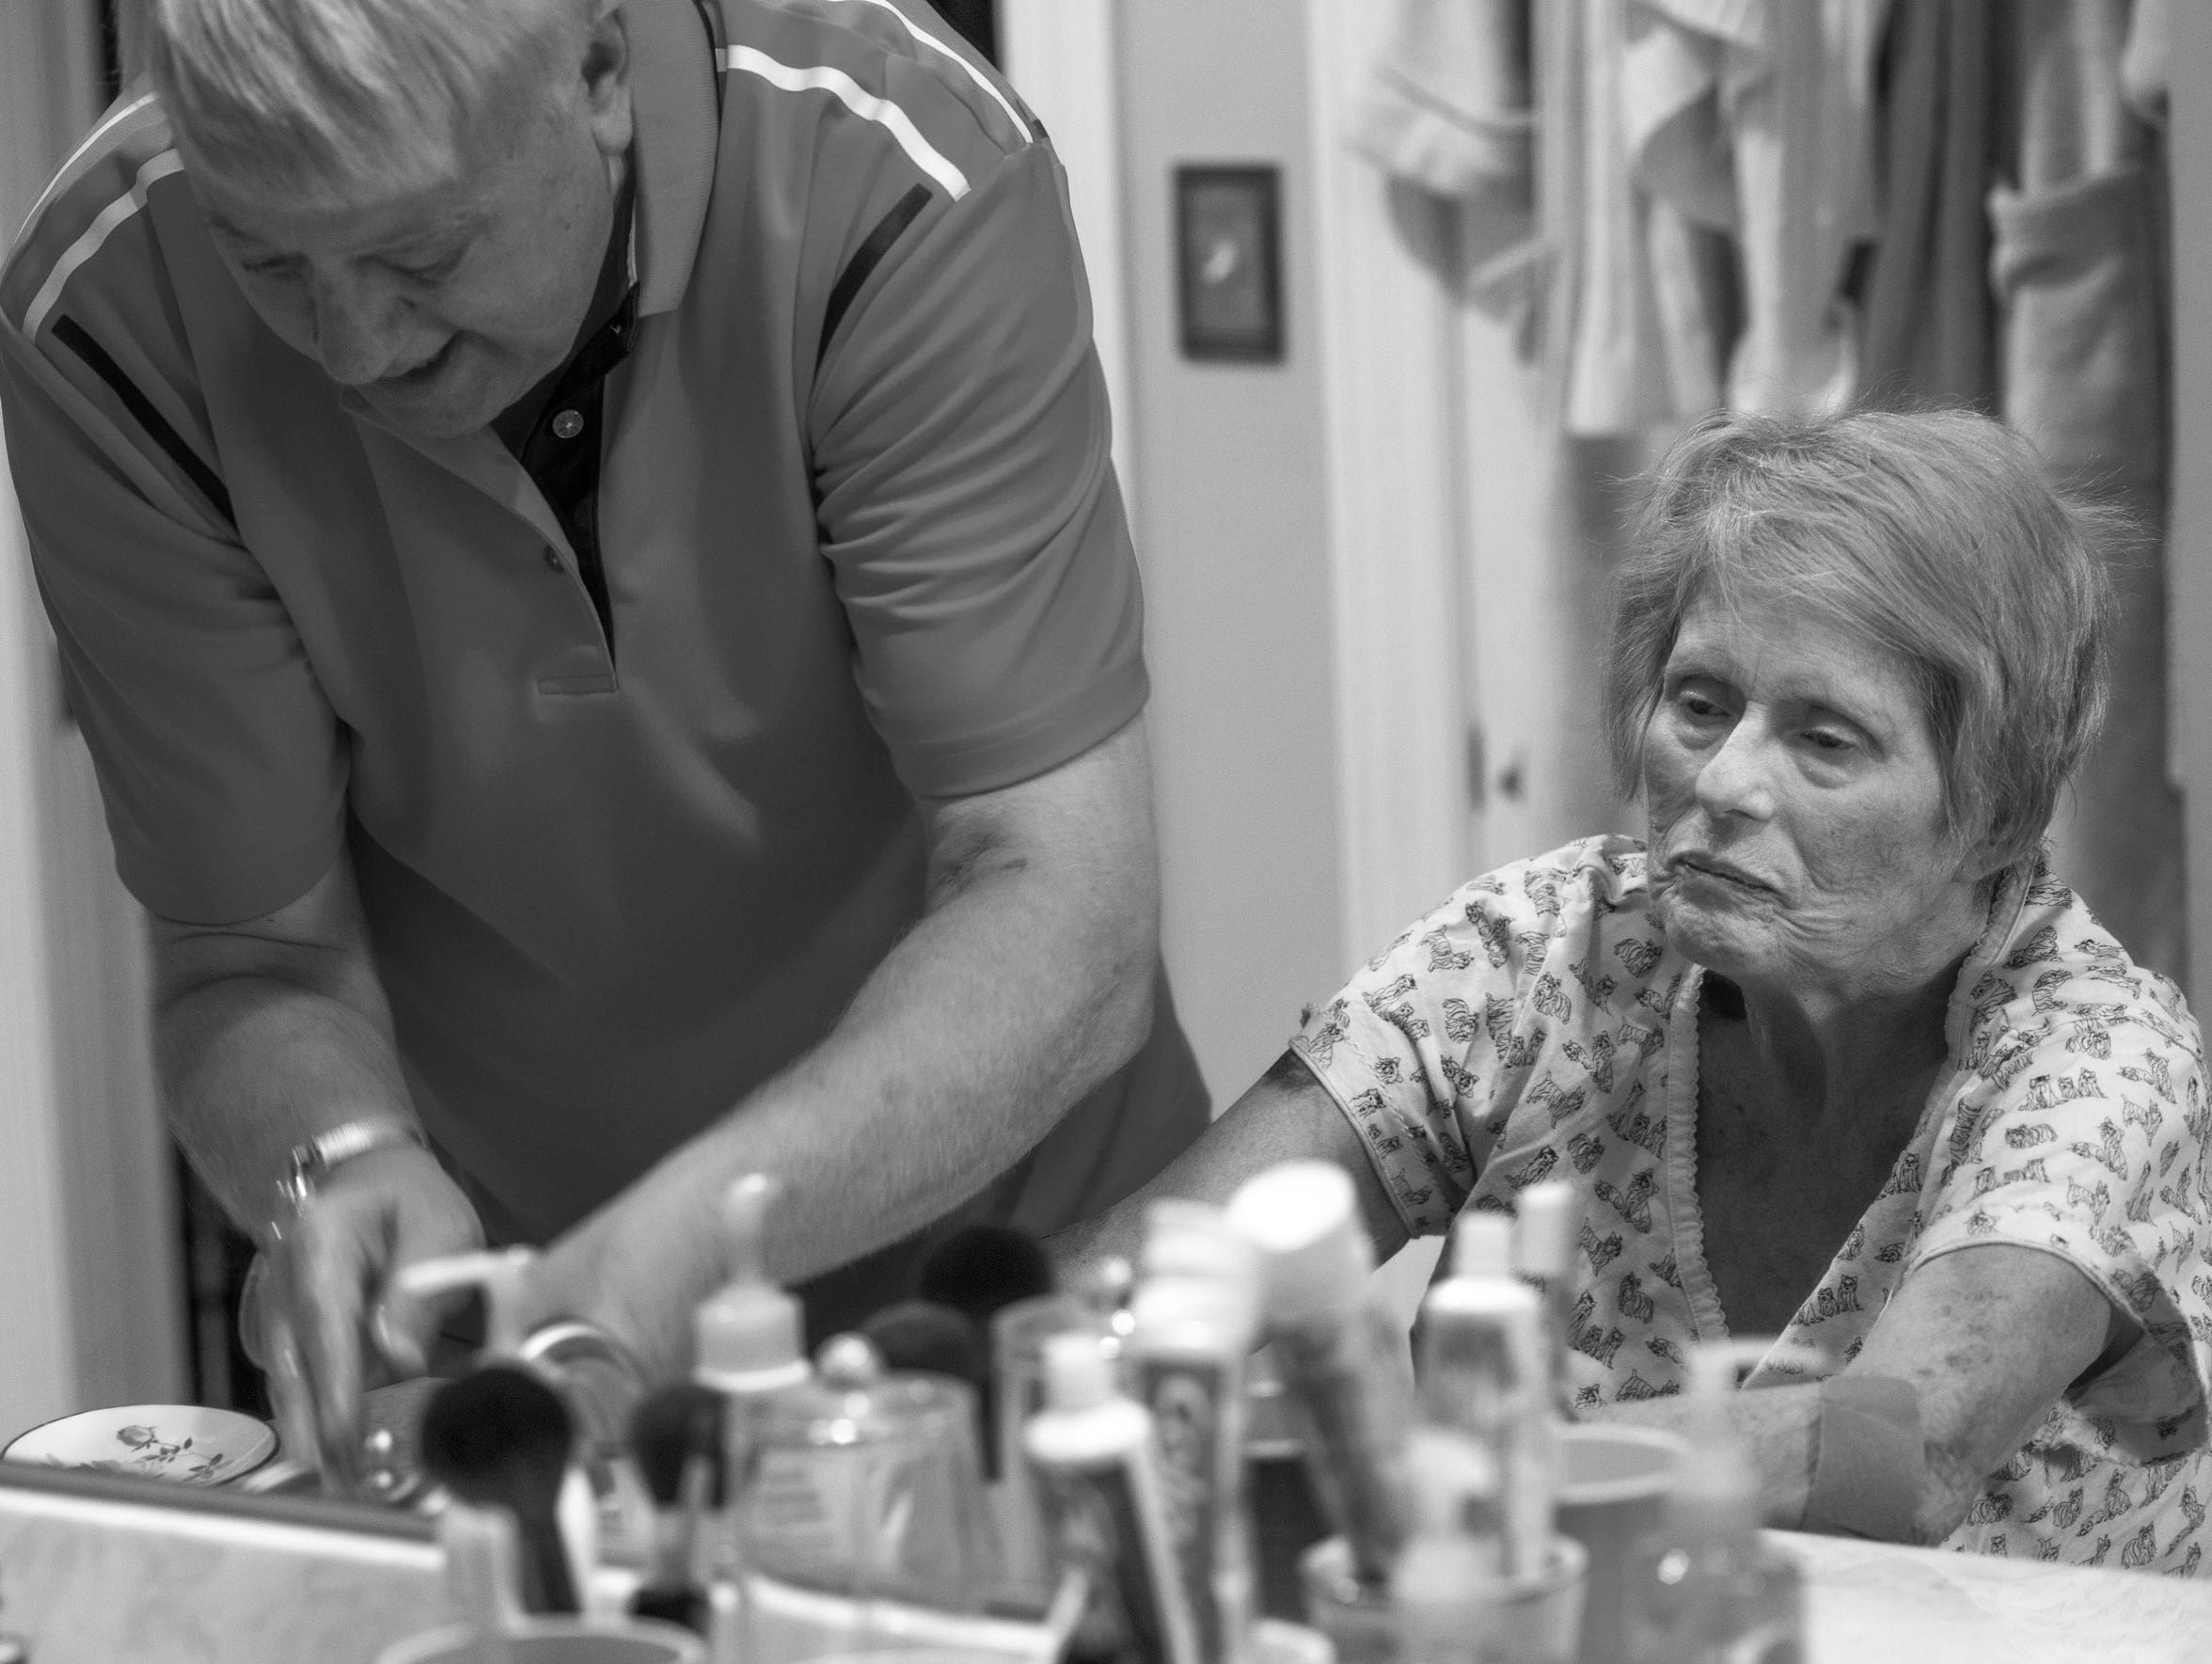 Fred helps Patty wash her hands in their master bathroom